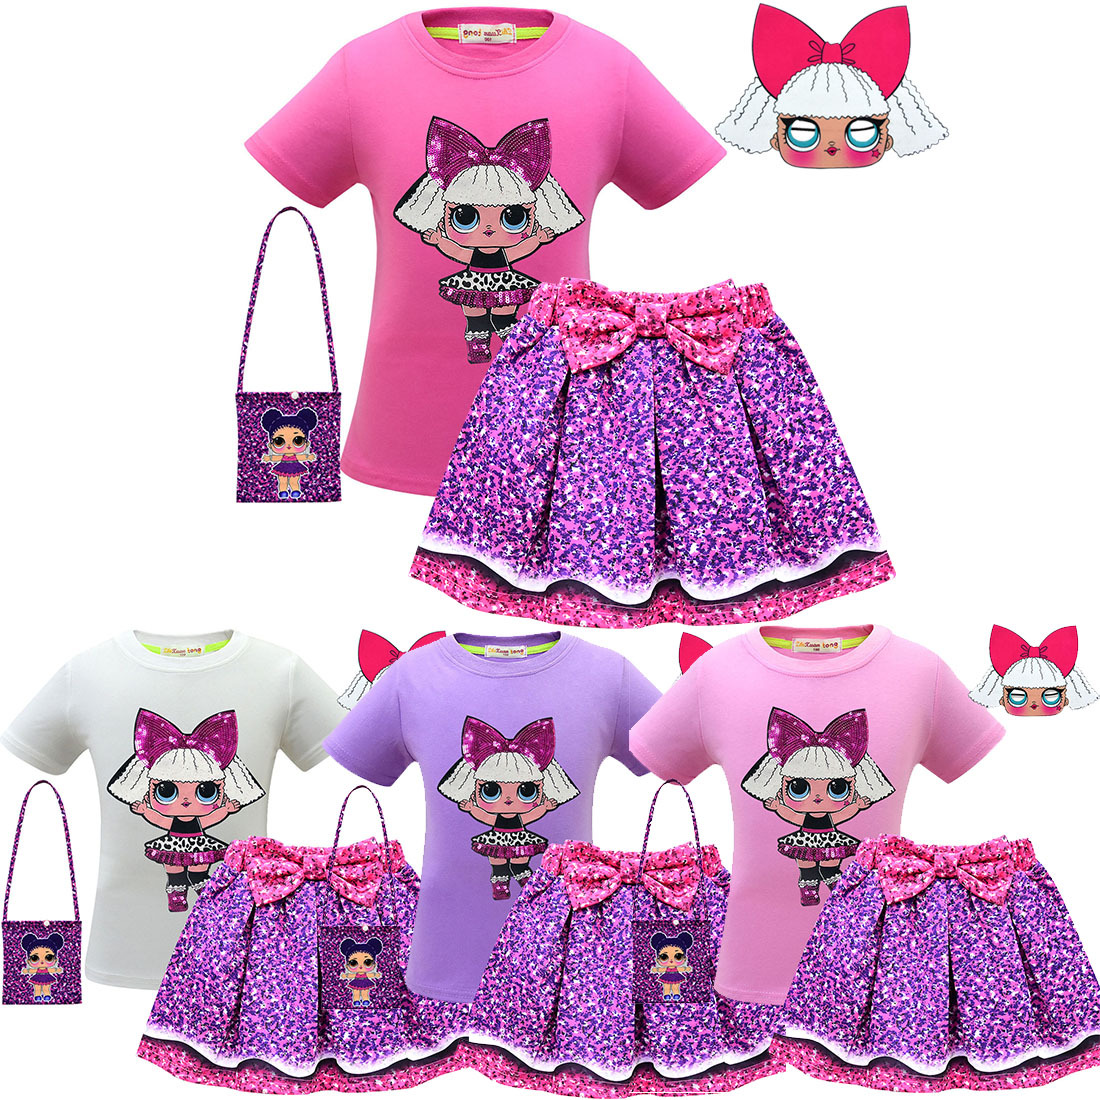 2019 New Surprise Children LOl Suit Skirt Cartoon Girls Short-sleeved Pleated Skirt Bow Mask 4 Sets